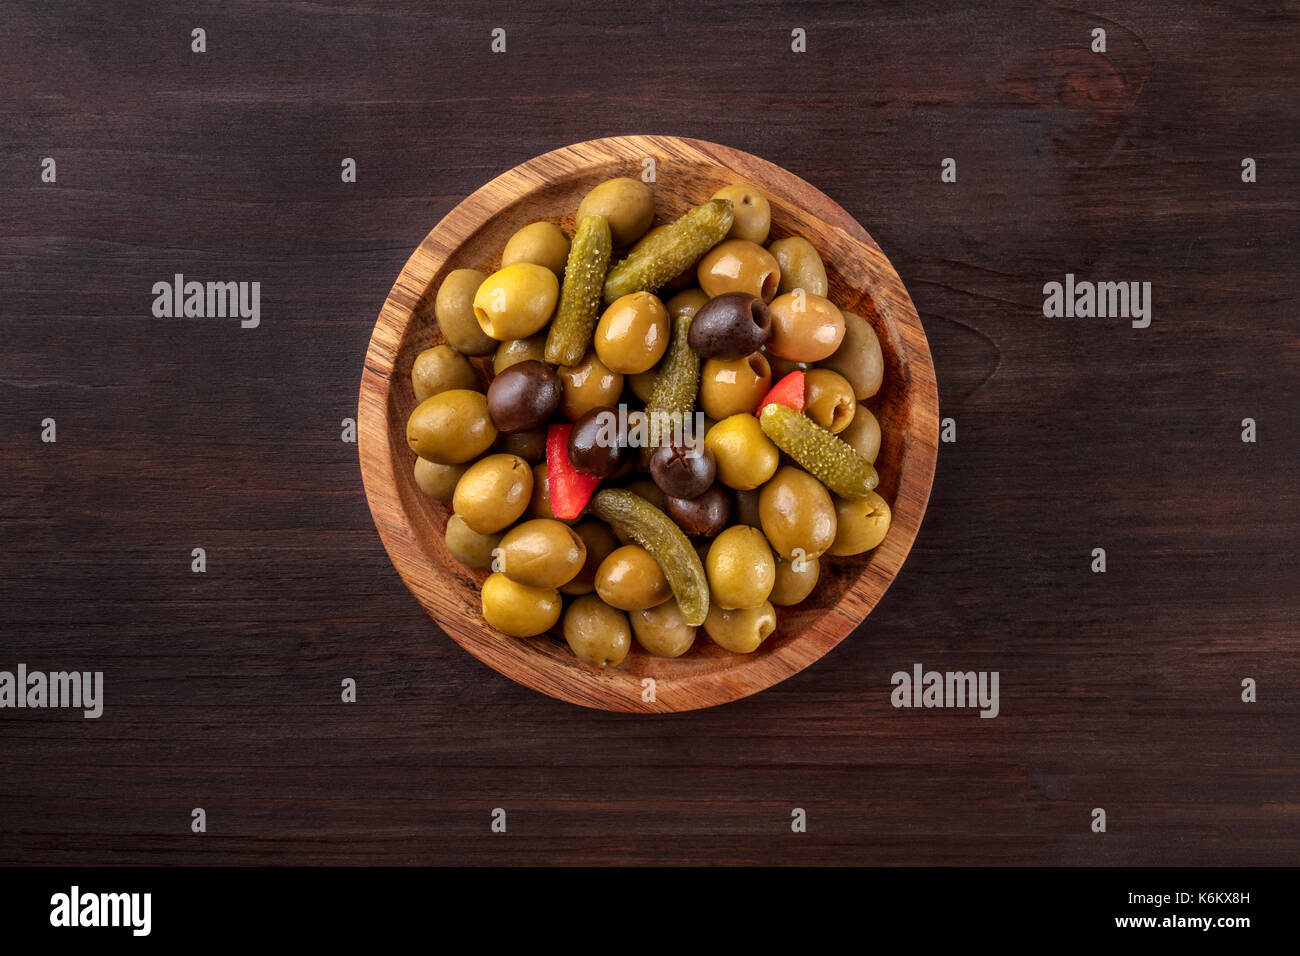 Overhead photo of pickled olives with copy space - Stock Image